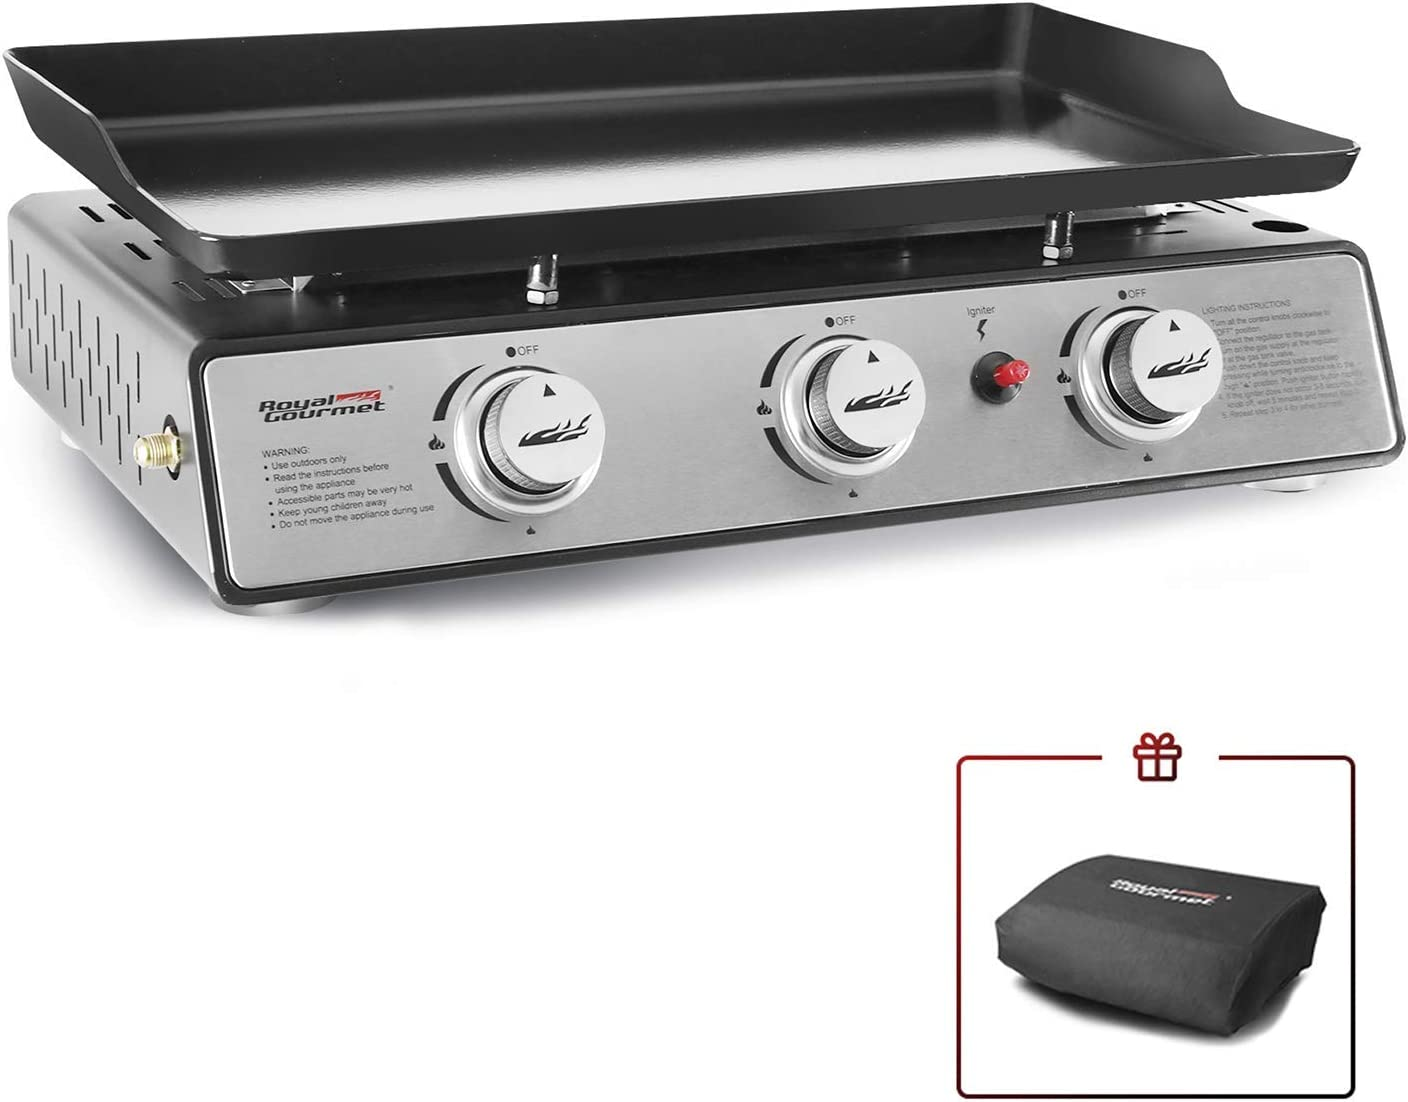 Royal Gourmet PD1301S 24-Inch 3-Burner Portable Table Top Gas Grill Griddle, 25,500 BTUs, Black